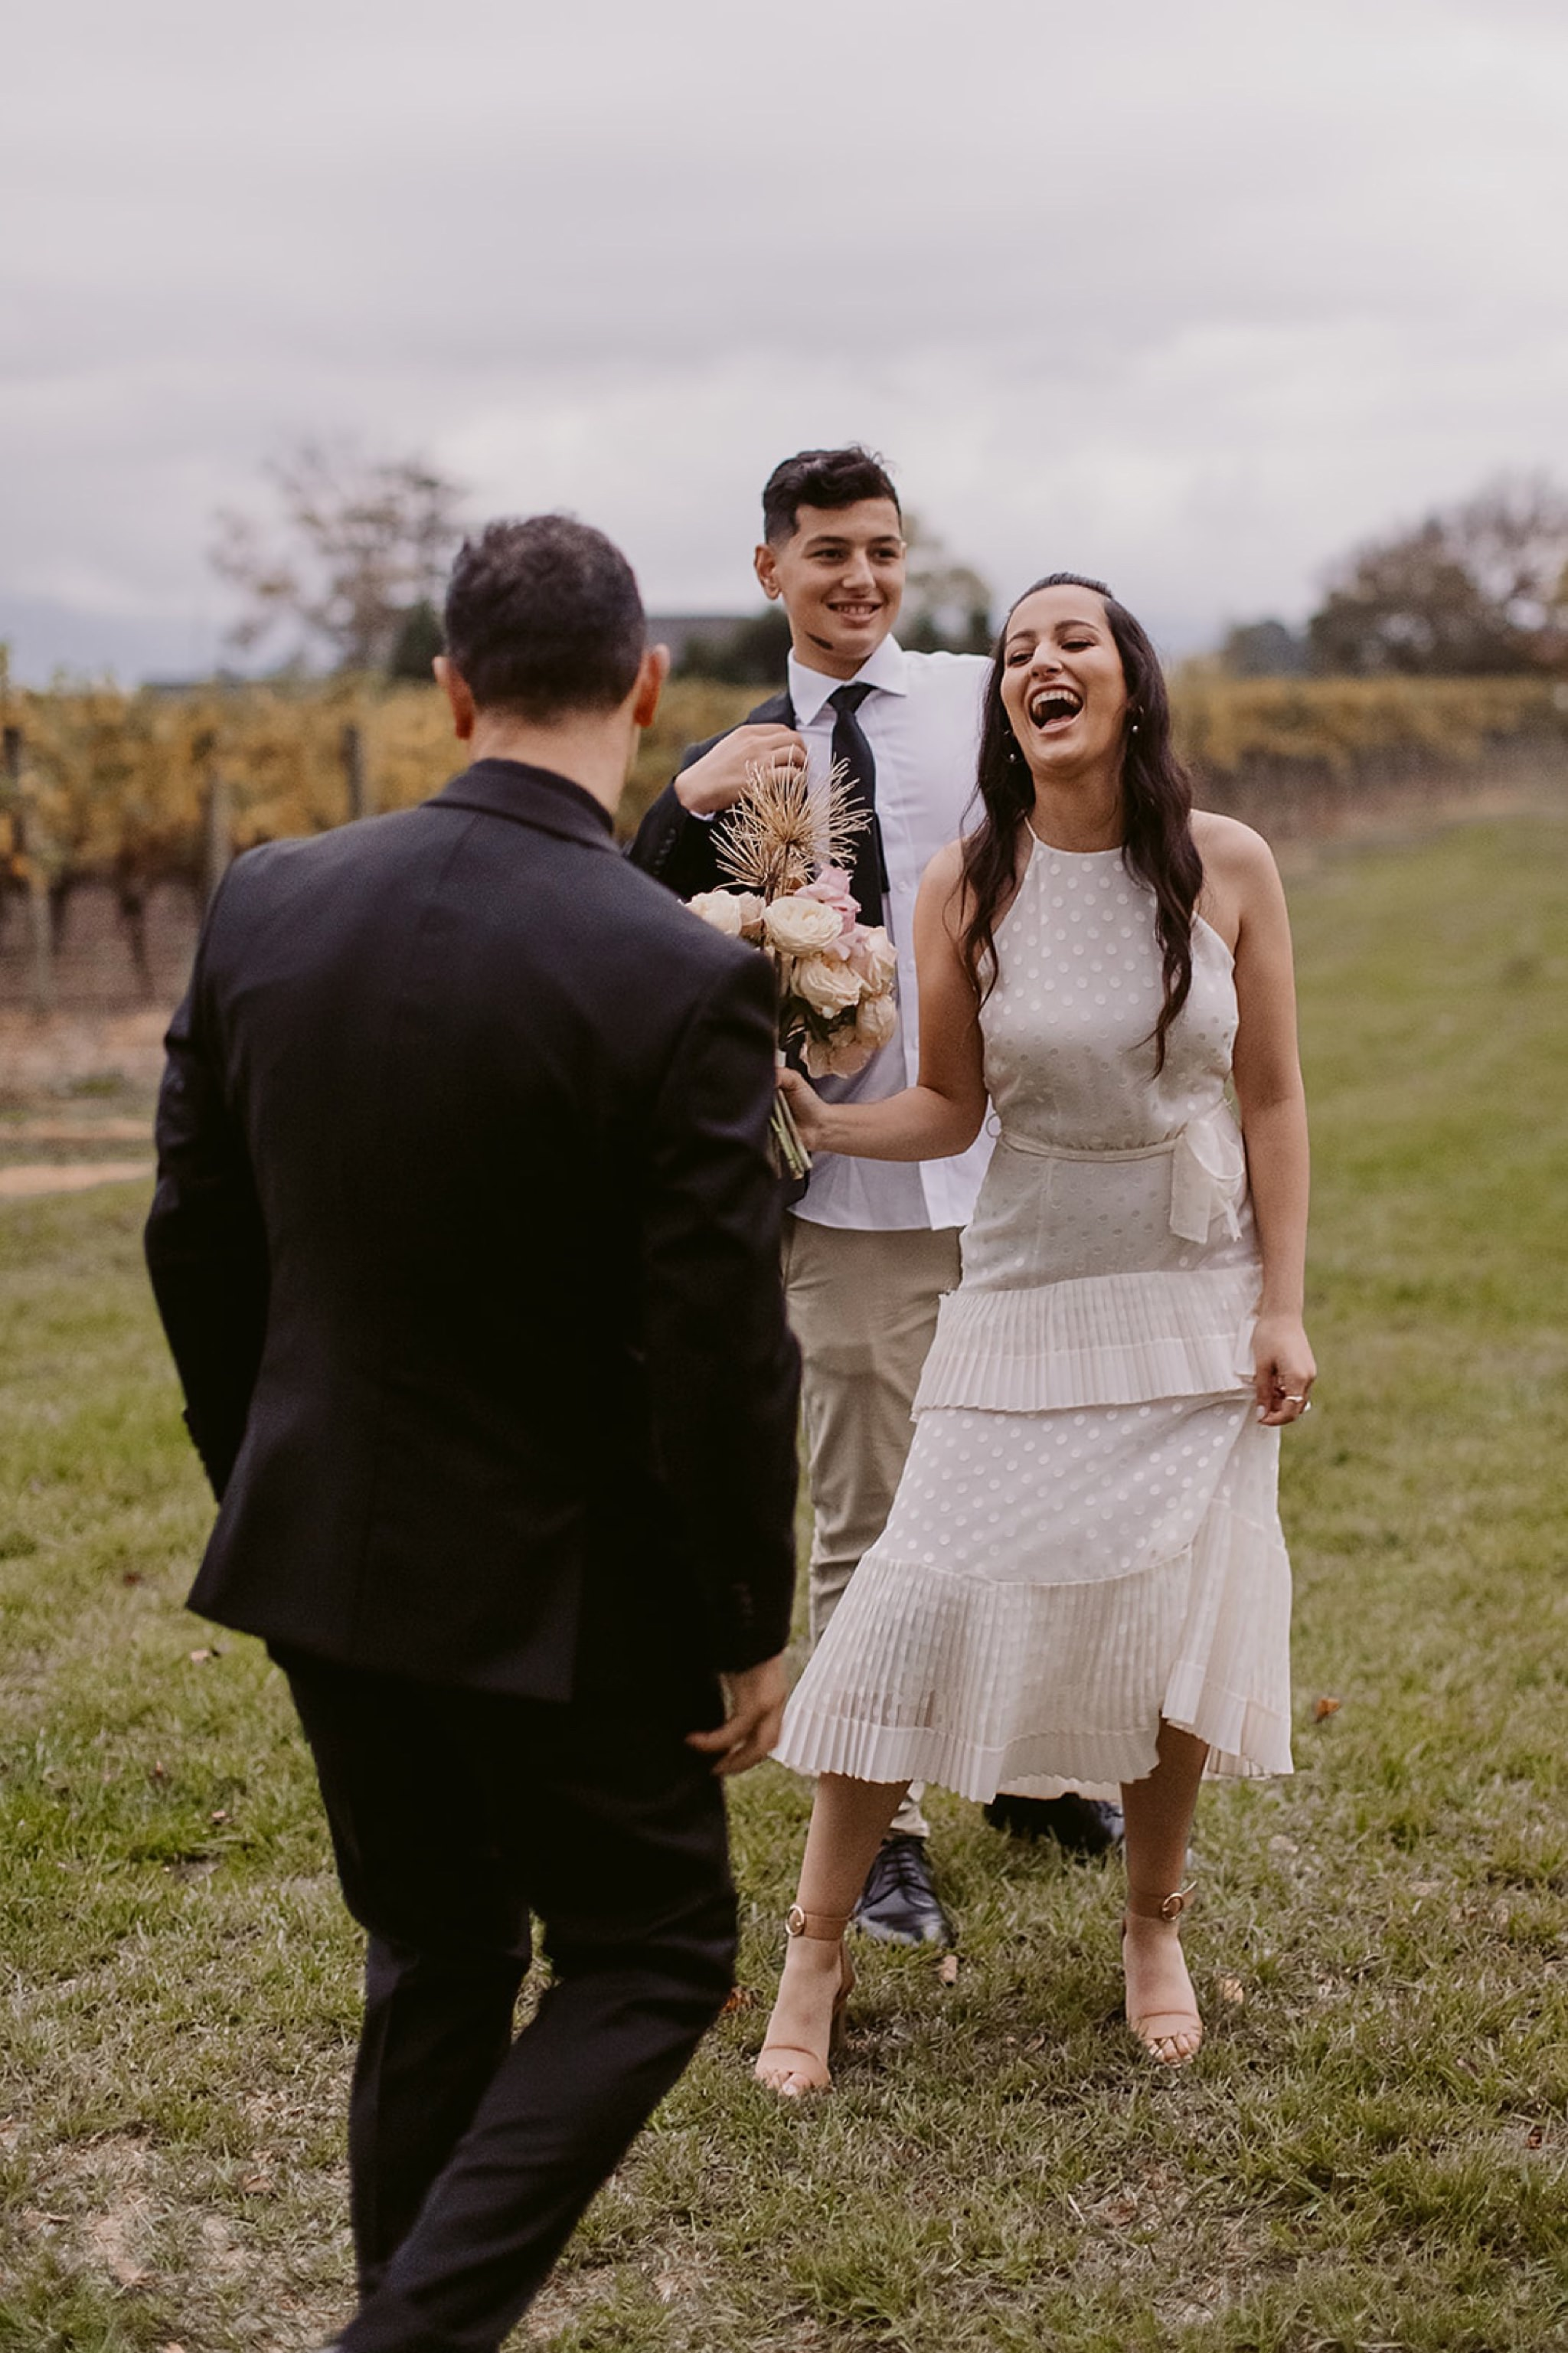 Stones of the Yarra Valley wedding photographer Ashleigh haase85.jpg